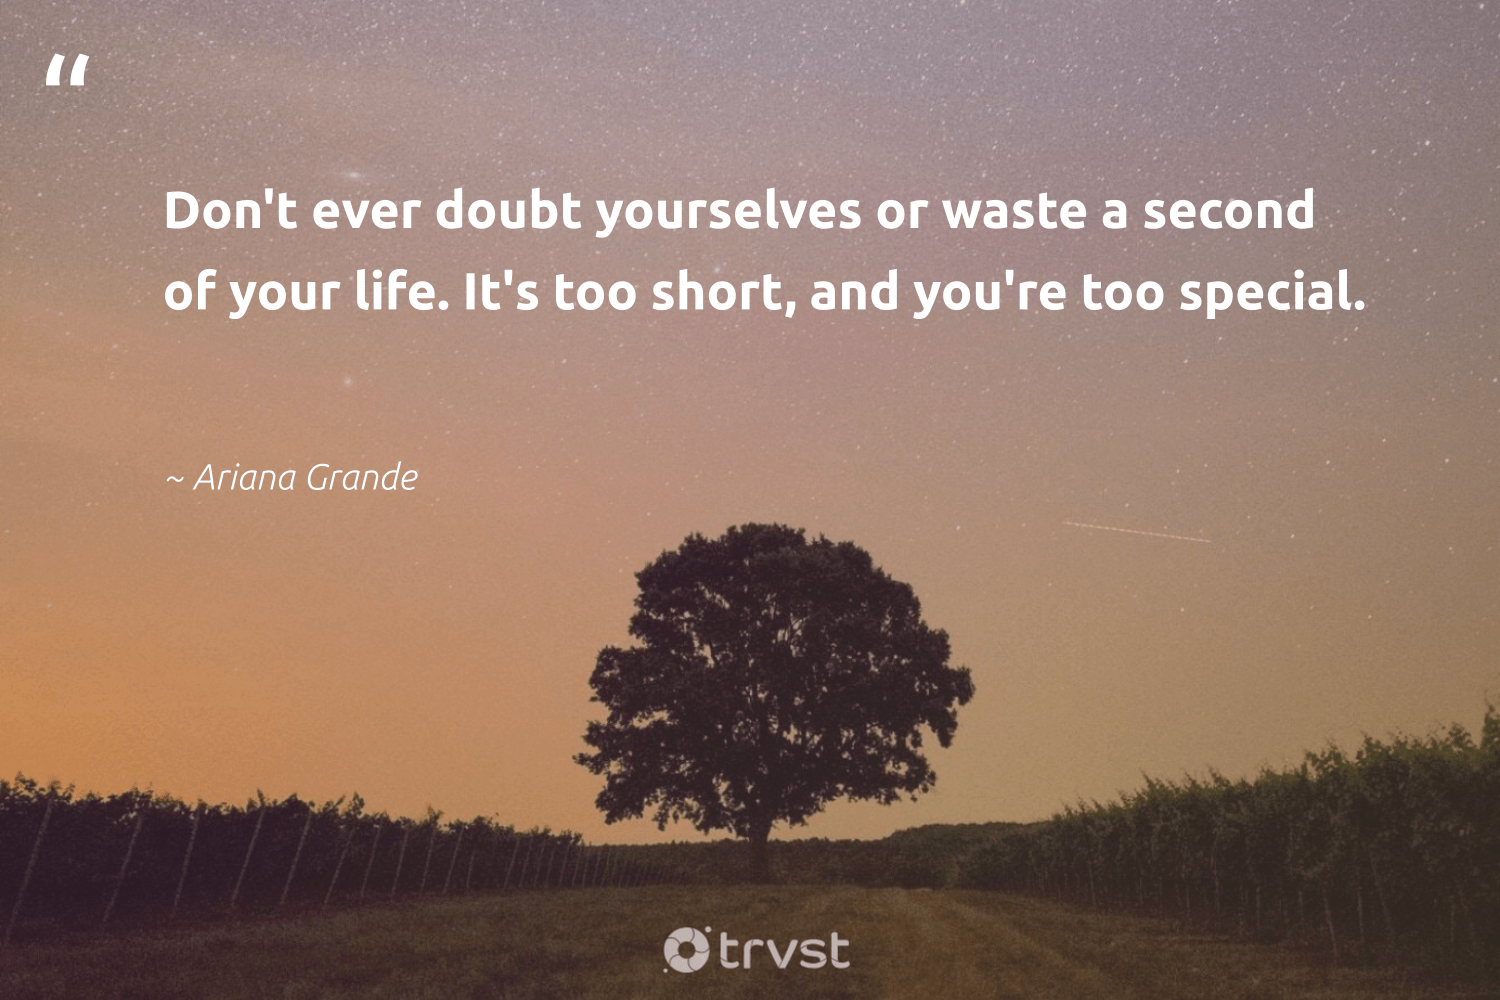 """Don't ever doubt yourselves or waste a second of your life. It's too short, and you're too special.""  - Ariana Grande #trvst #quotes #waste #nevergiveup #dosomething #changemakers #dogood #mindset #gogreen #begreat #bethechange #health"